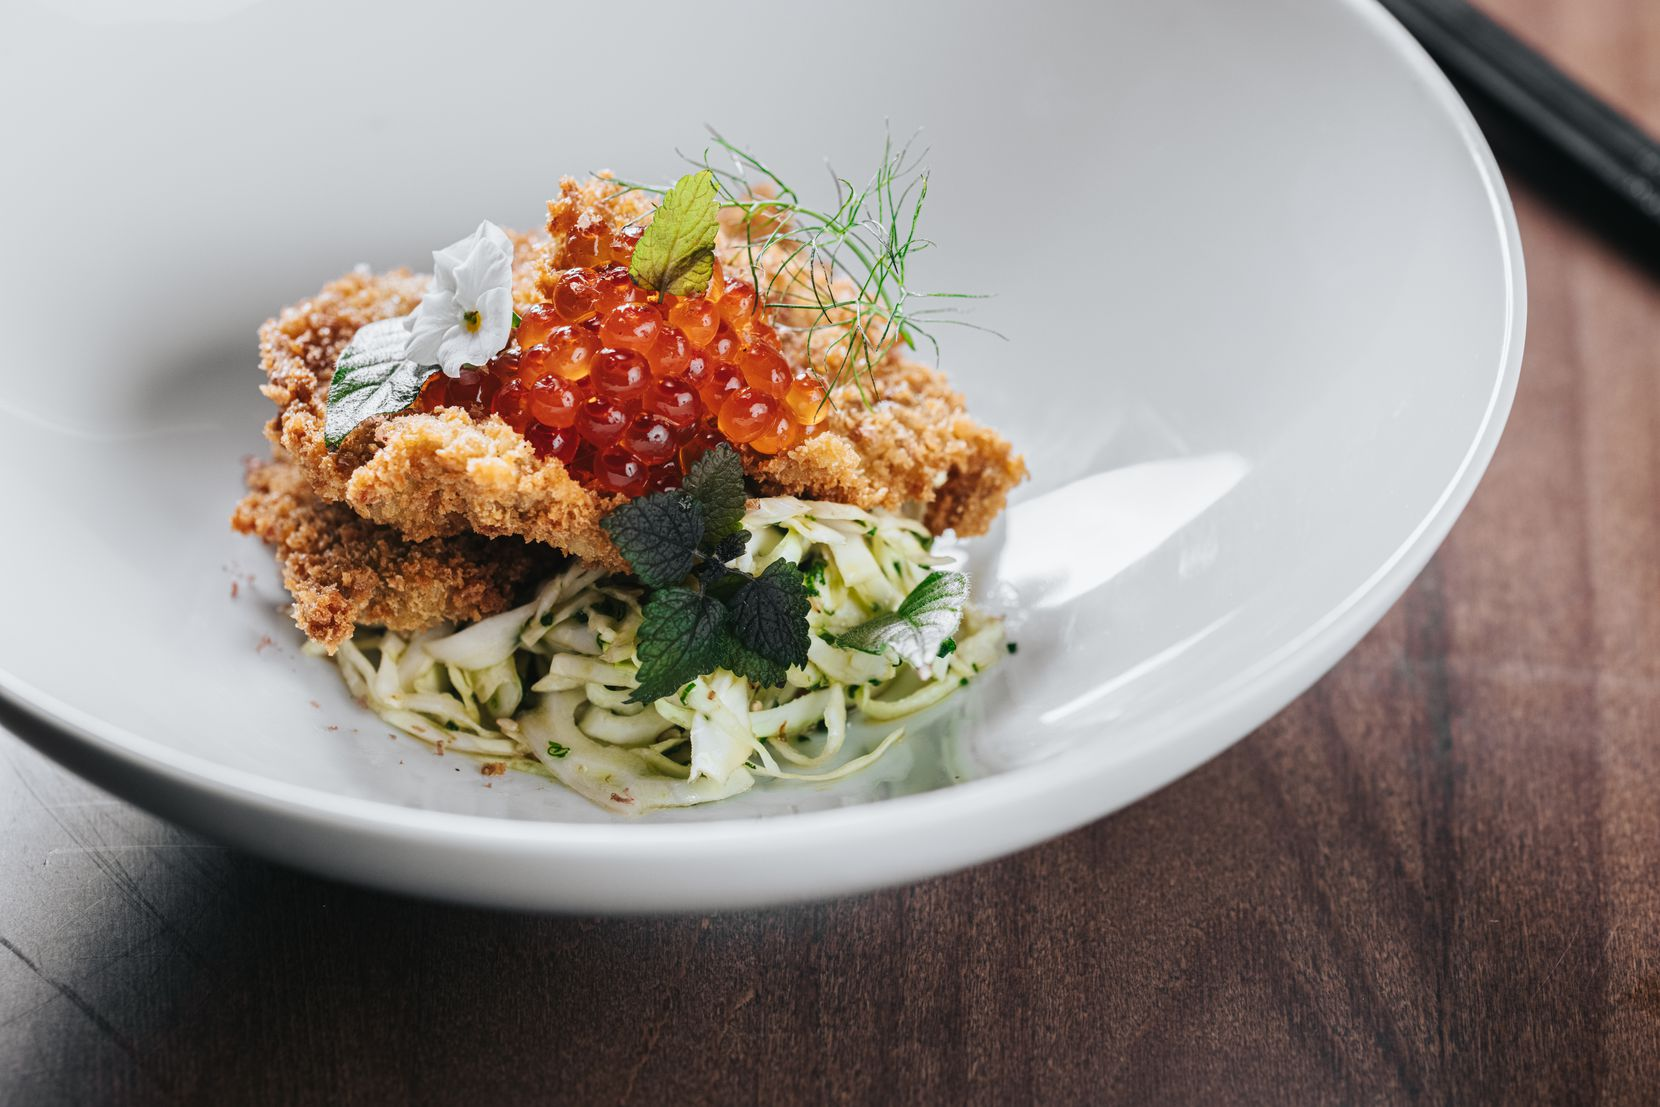 Ichi Ni San will have panko-fried oysters topped with red caviar on its menu. Ichi Ni San is a non-traditional Japanese restaurant from chefs Peja Krstic and Somnuk Gatesuwan in downtown Dallas' AT&T Discovery District.